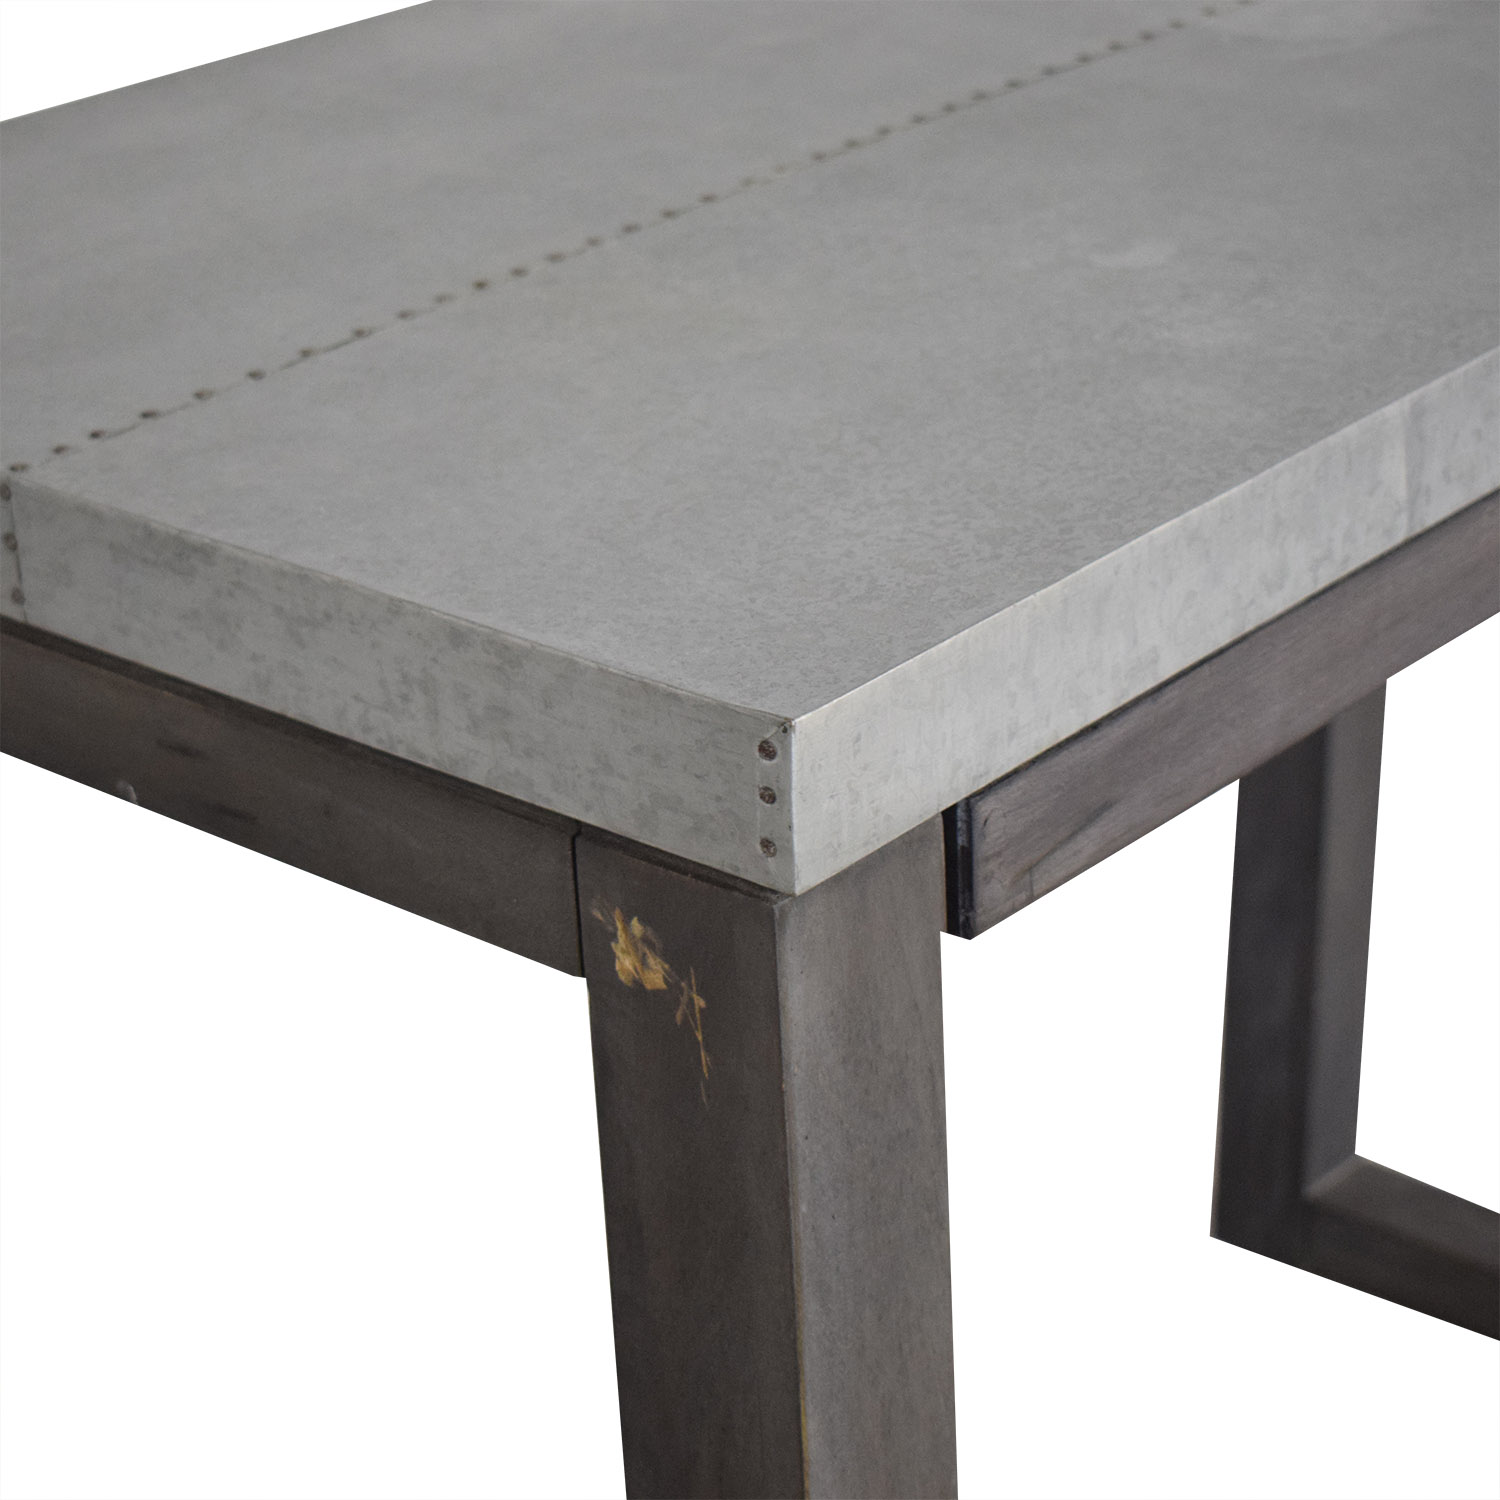 CB2 CB2 Steel Top Table discount